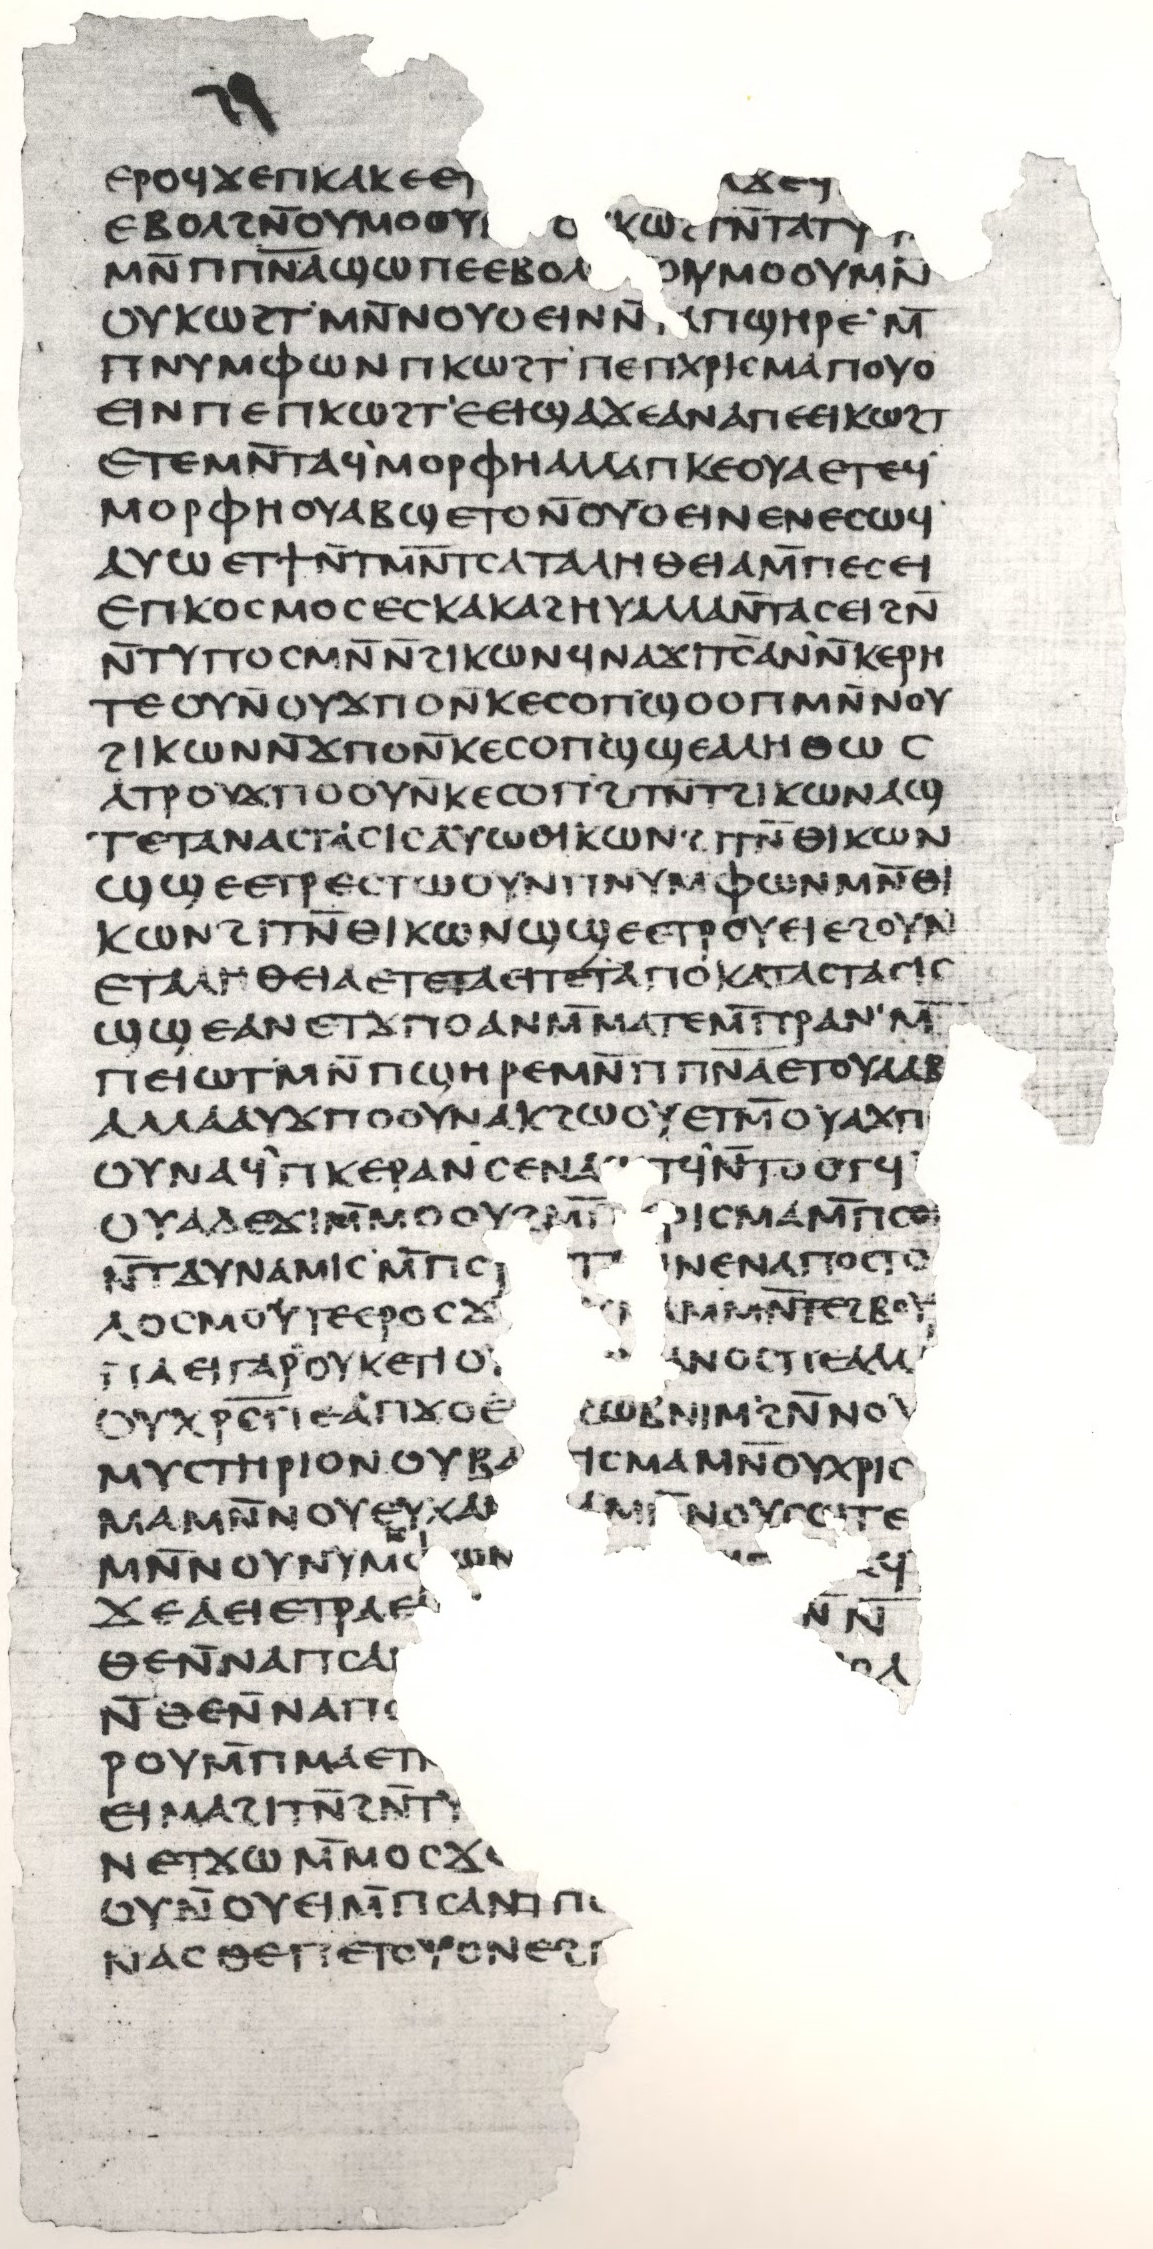 Gospel_of_Philip_facsimile_Page_67.jpg